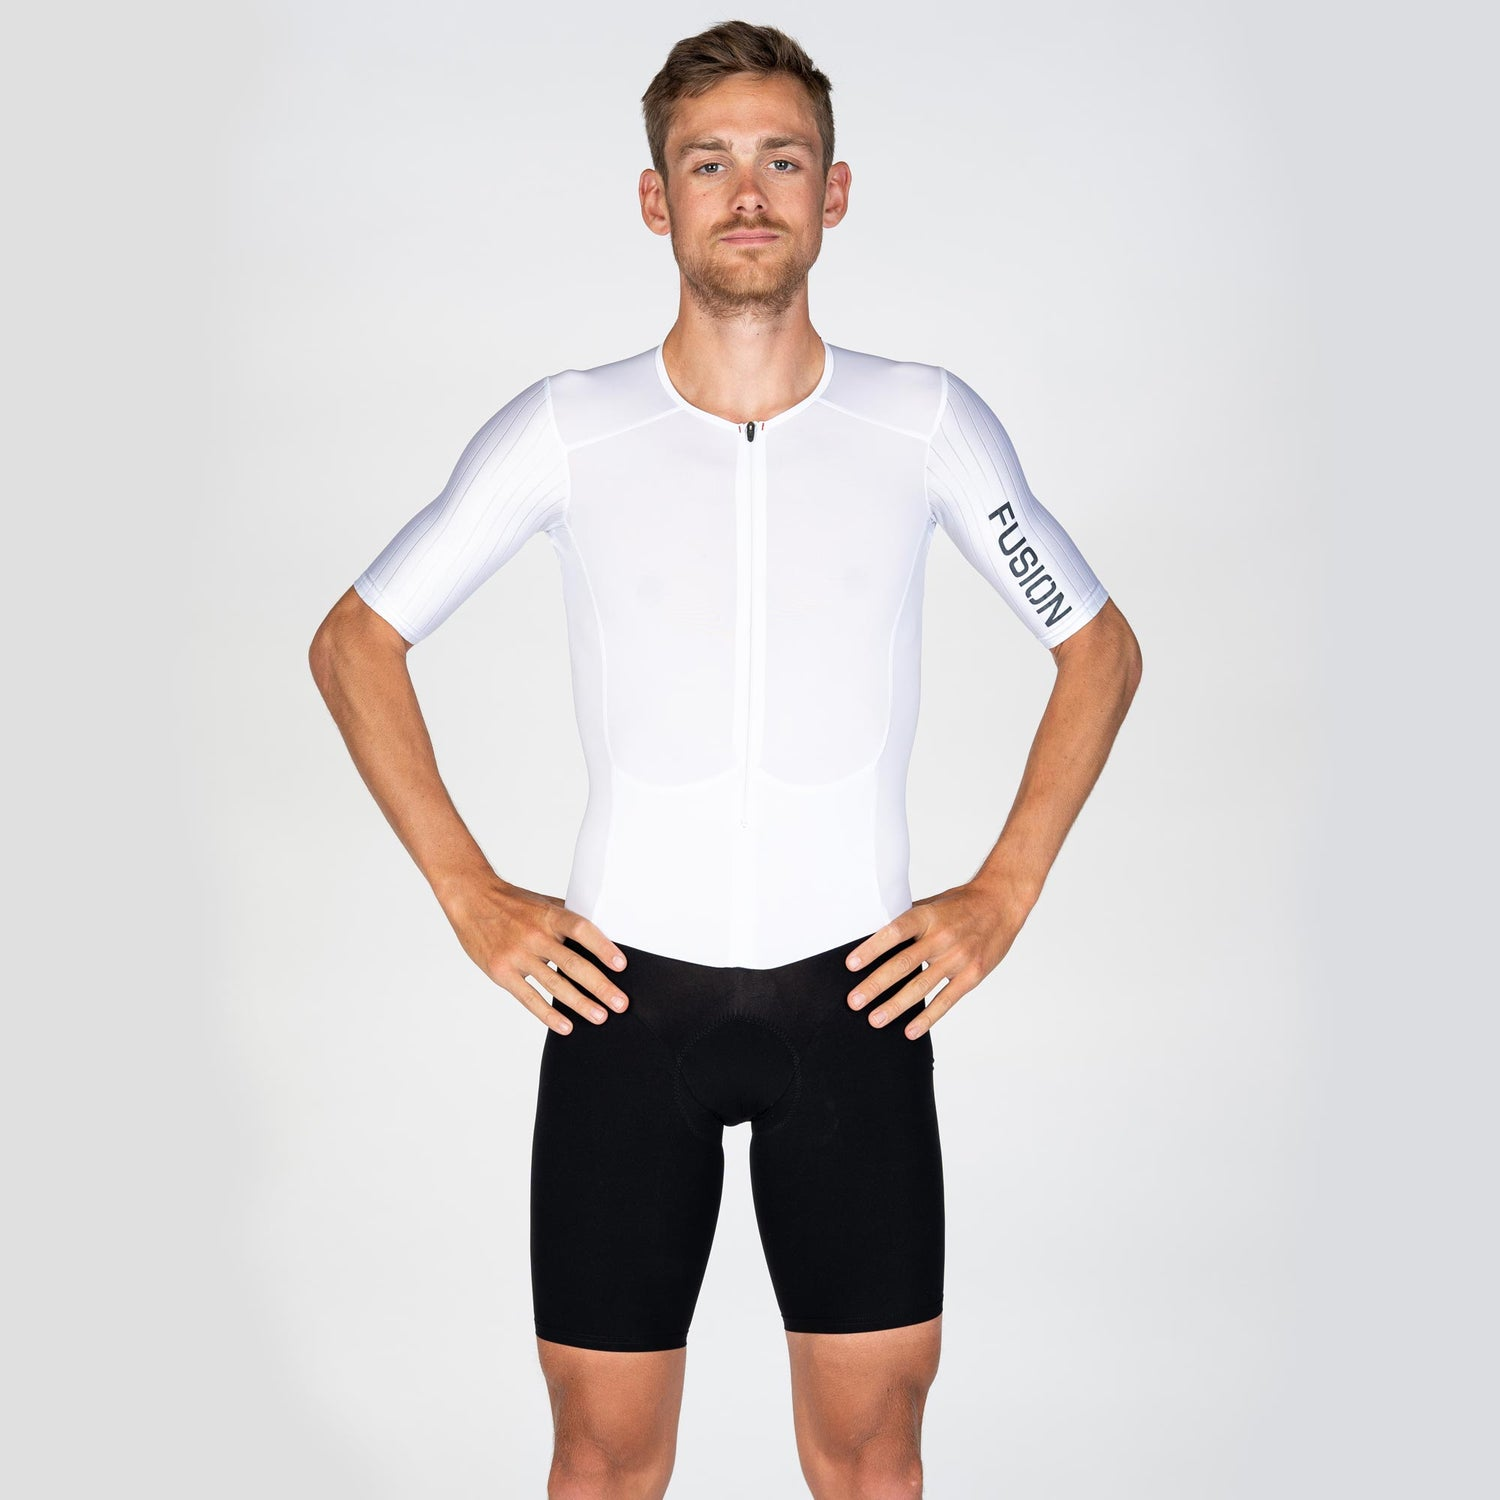 Fusion SLi (SuperLight) High Speed Suit_sleeved tri suit_front